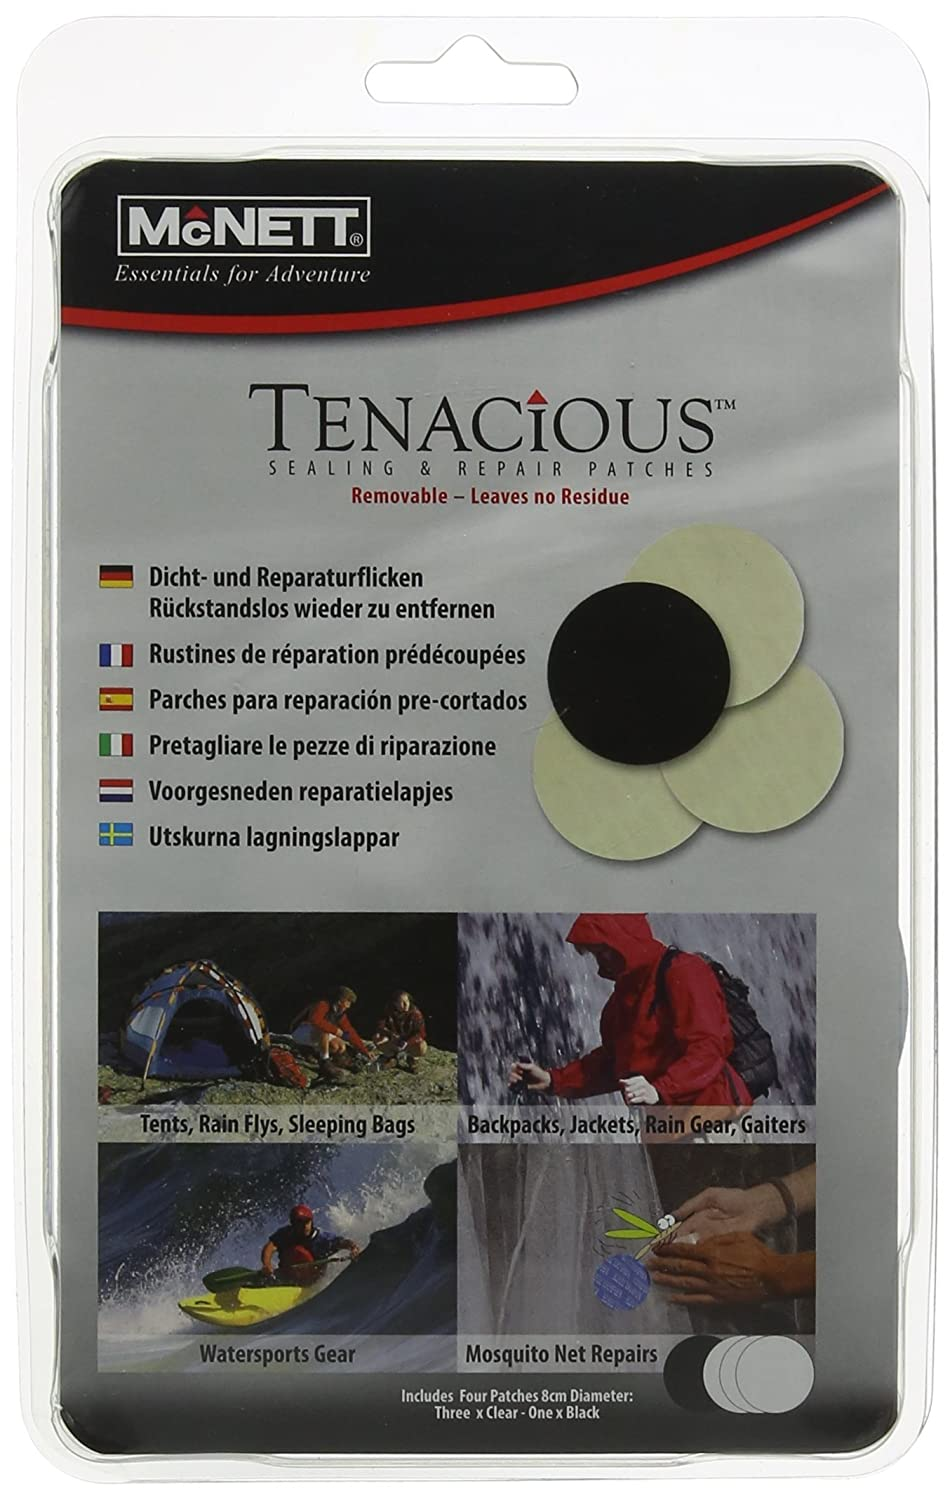 Mcnett Tenacious Sealing and Repair Patches (Pack of 4) MN16